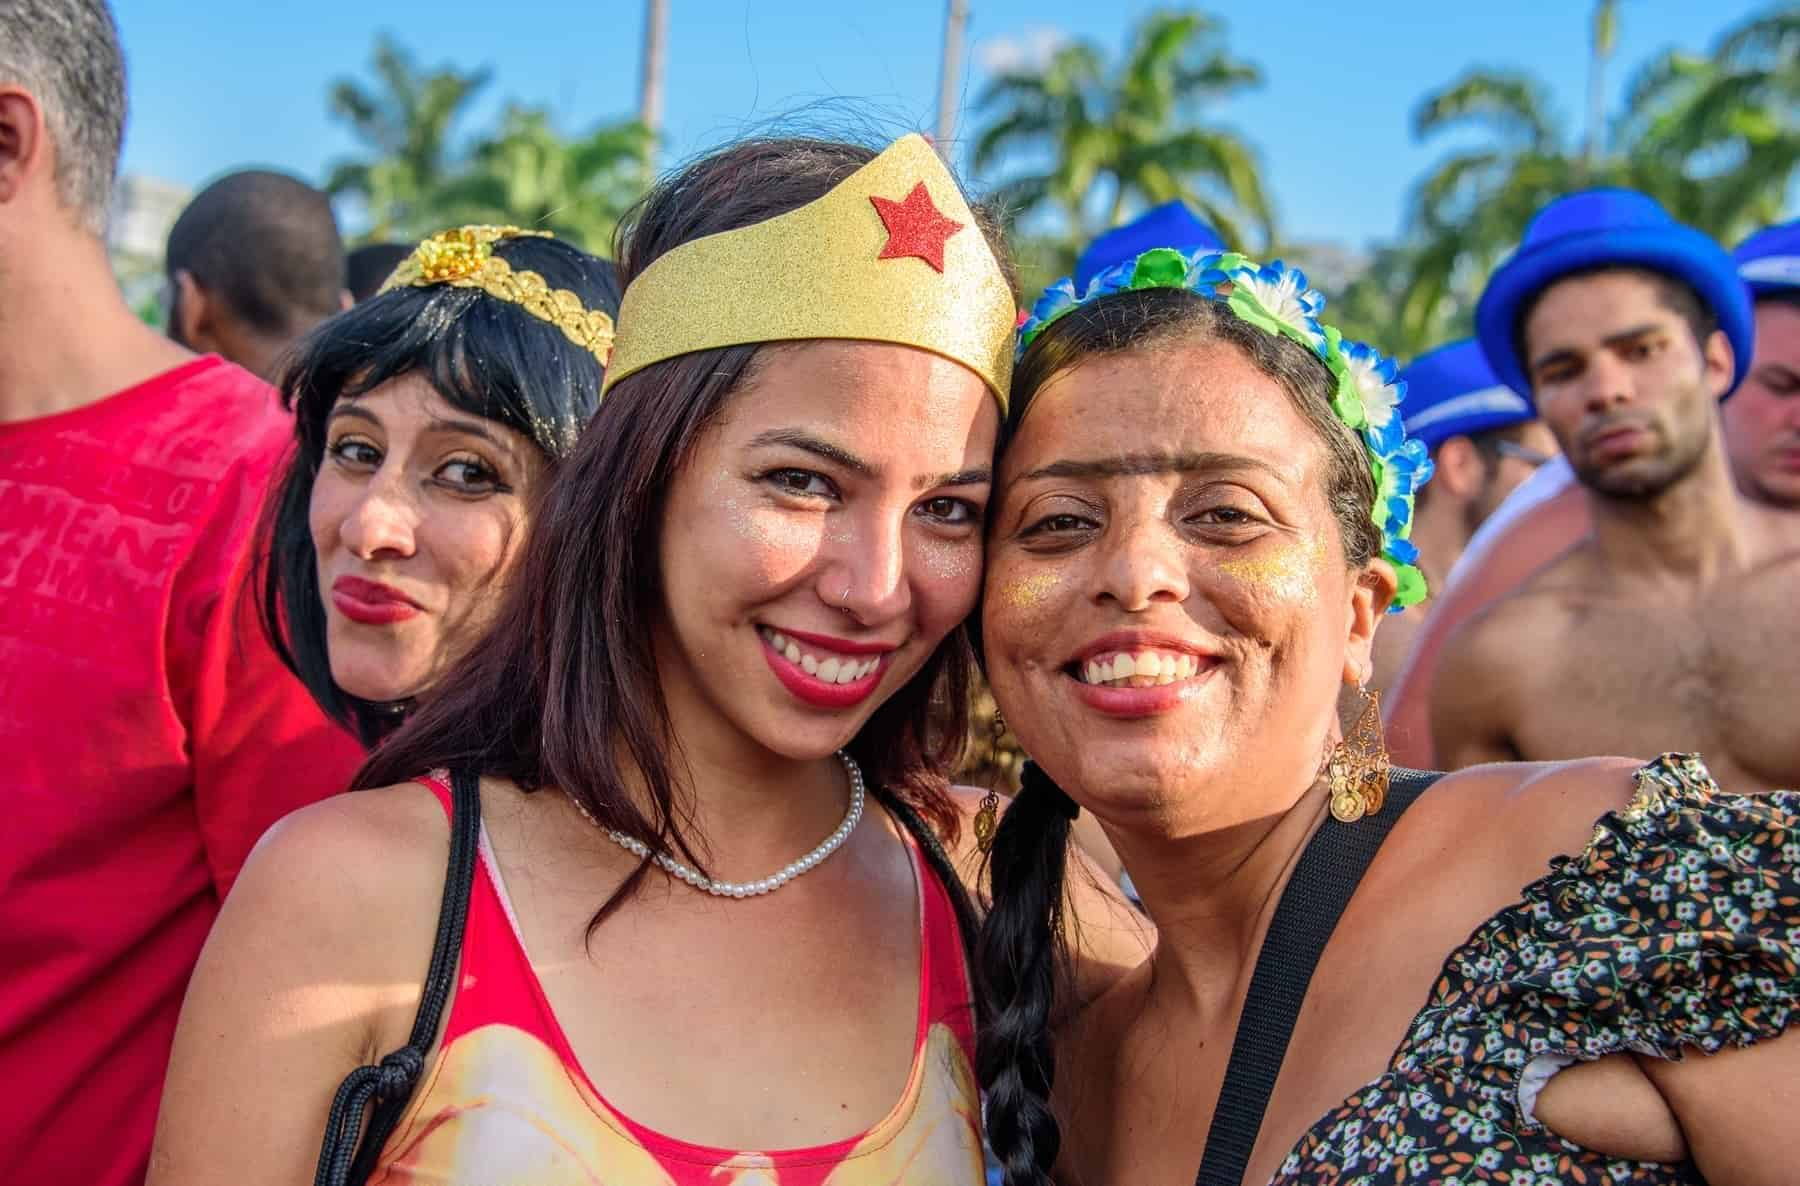 RIO DE JANEIRO, BRAZIL Young women wearing costumes of Wonder Woman and Frida Kahlo with unibrow having fun at Bloco Orquestra Voadora in Flamengo Park, Carnaval 2017